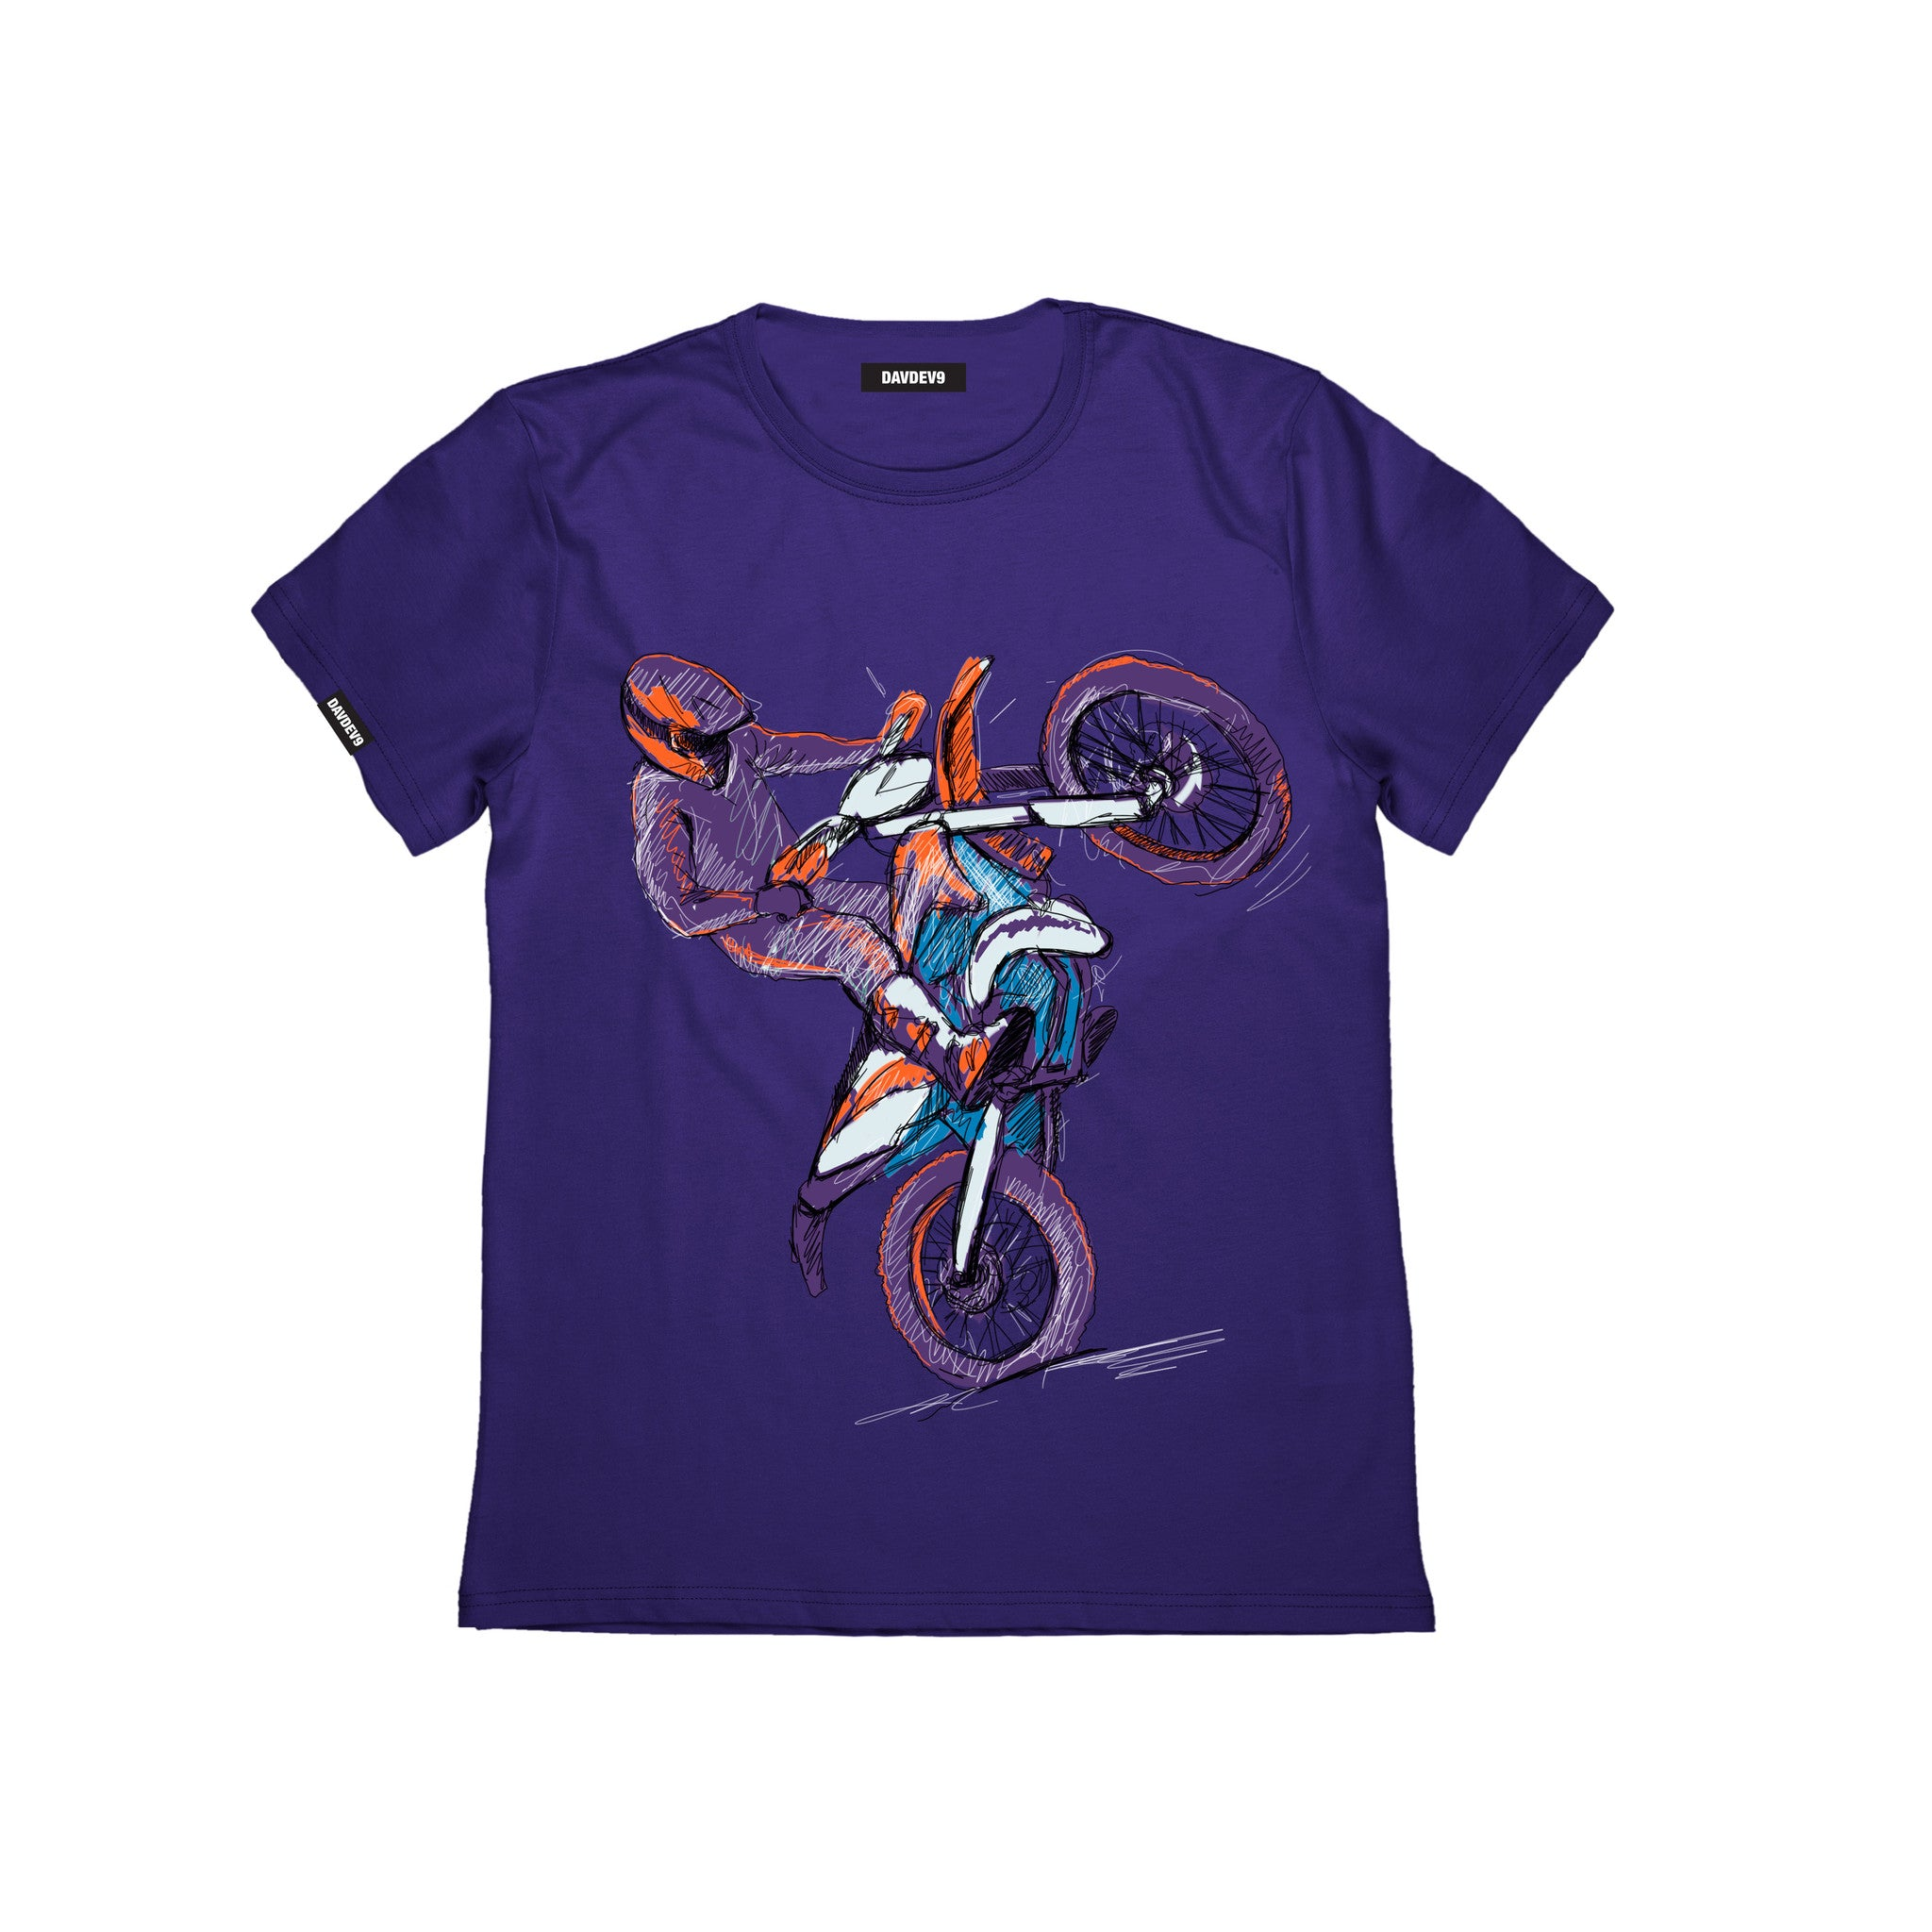 T-Shirt Youths Rider